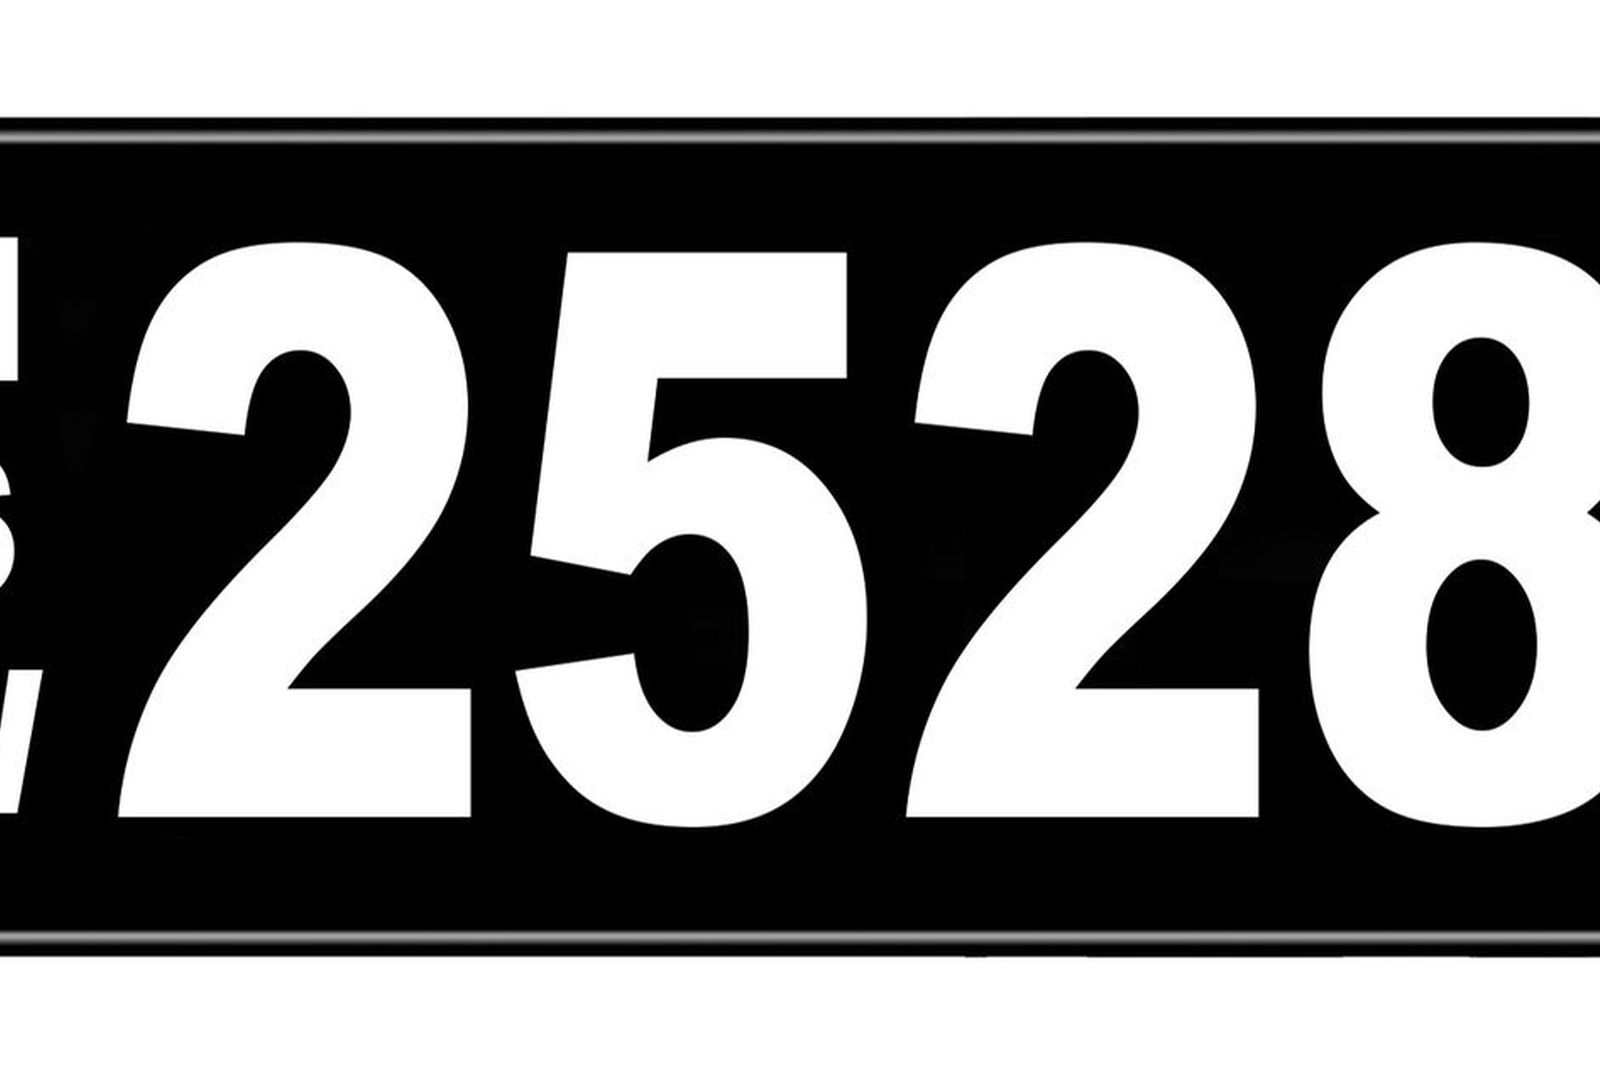 Number Plates - NSW Numerical Number Plates '2528'